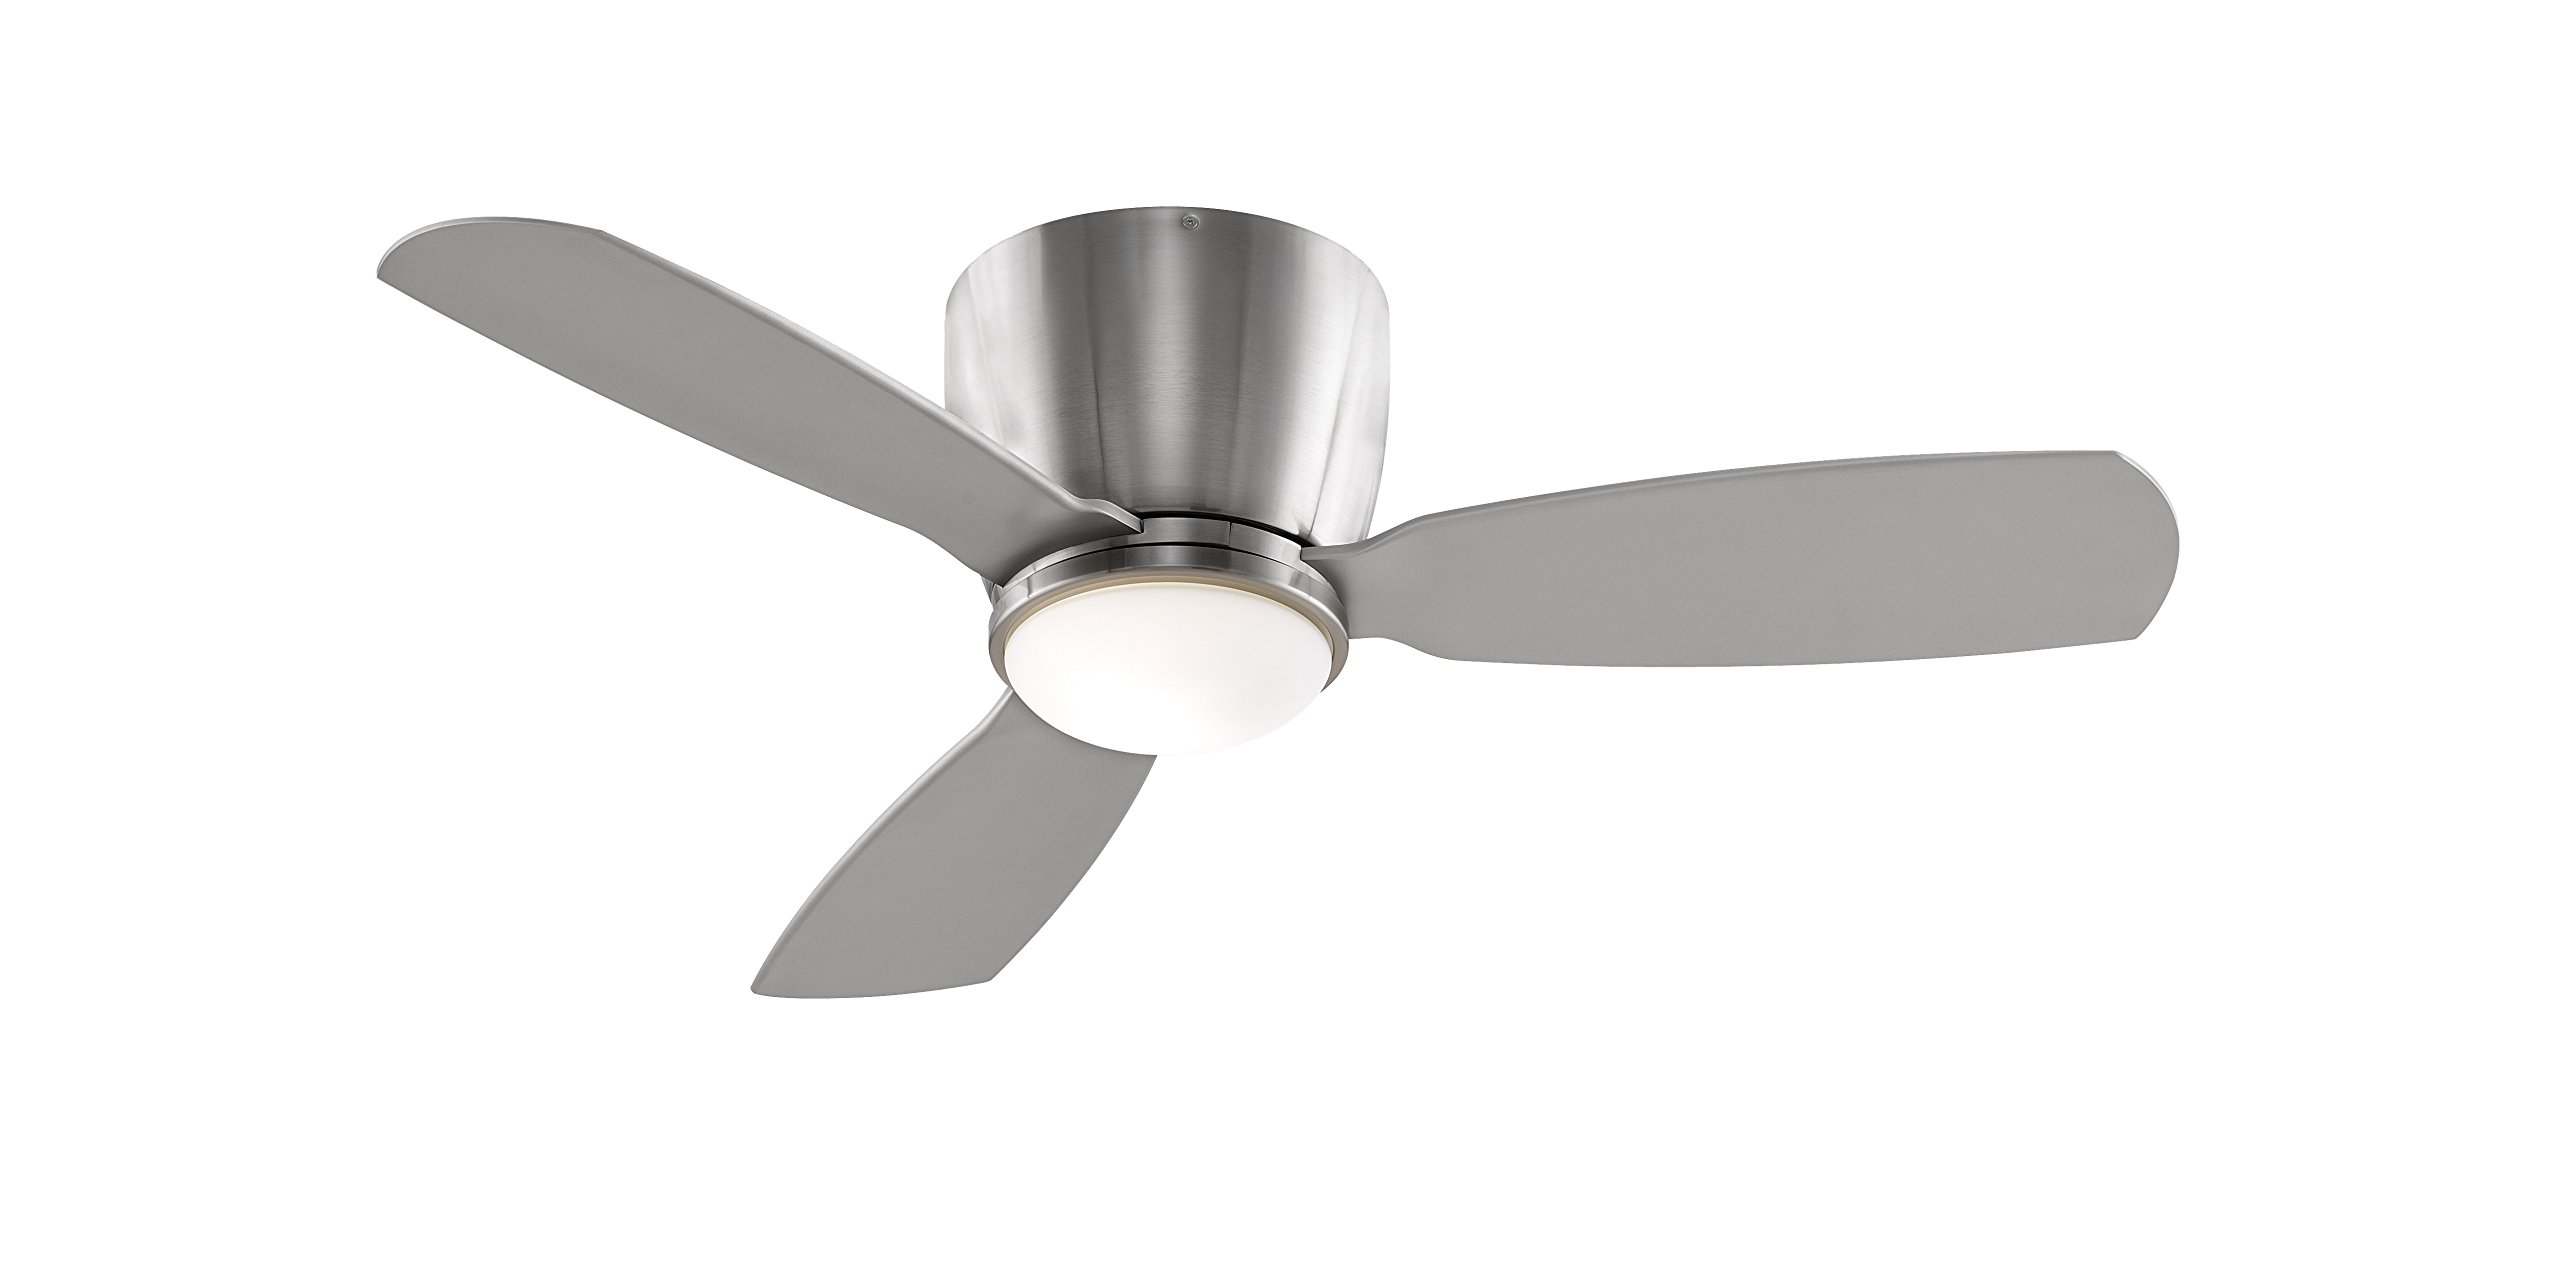 Fanimation FPS7981BN Embrace Ceiling Fan with Light Kit and Remote, 44-inch, Brushed Nickel